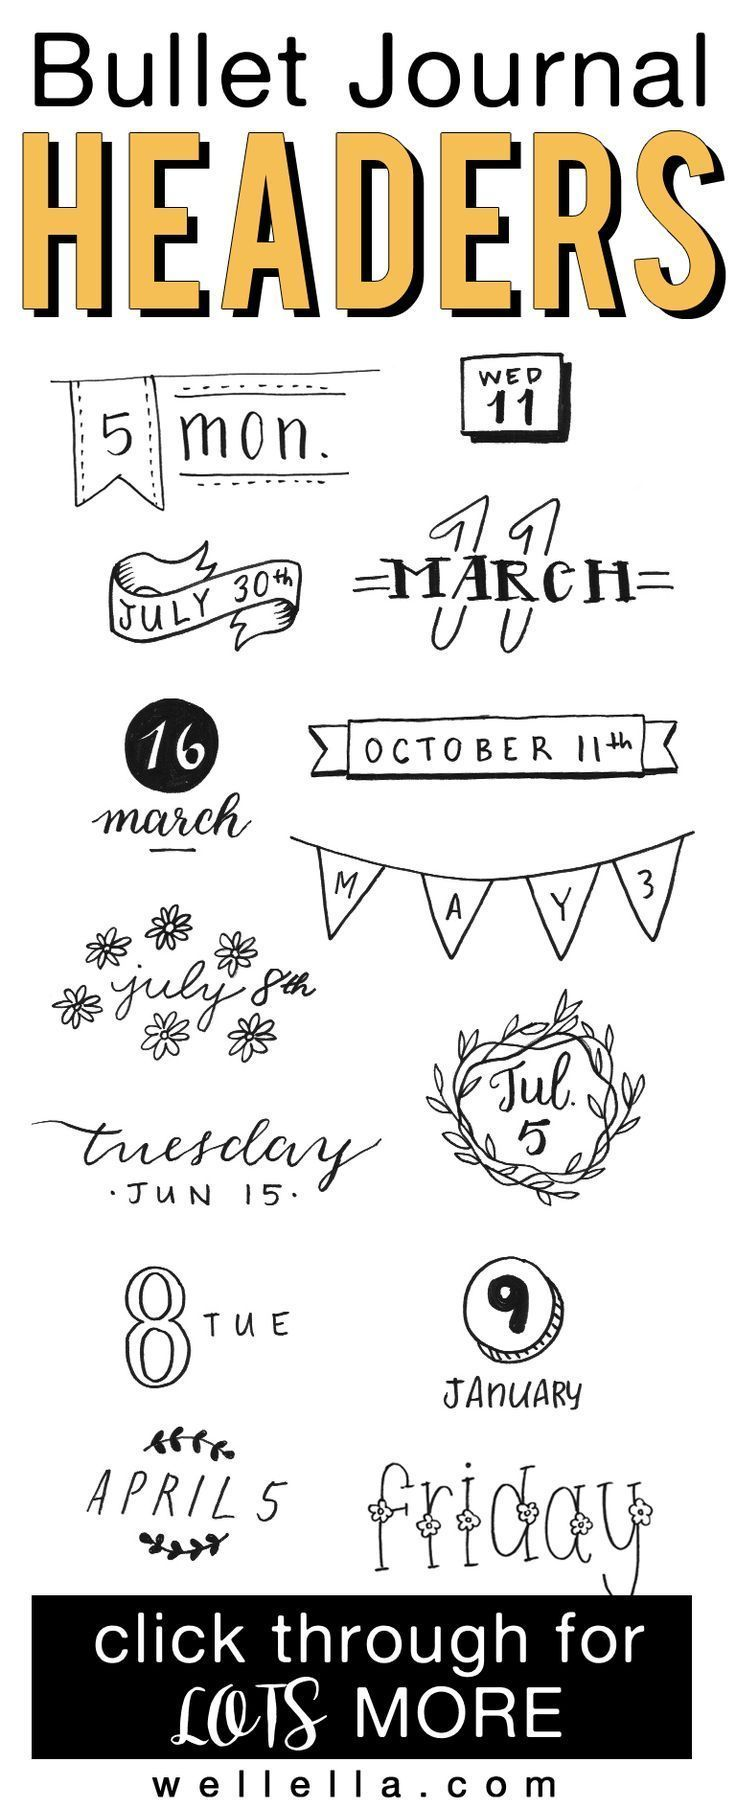 Bullet Journal Headers You Can Easily Copy + Examples -  Bullet journal headers ...